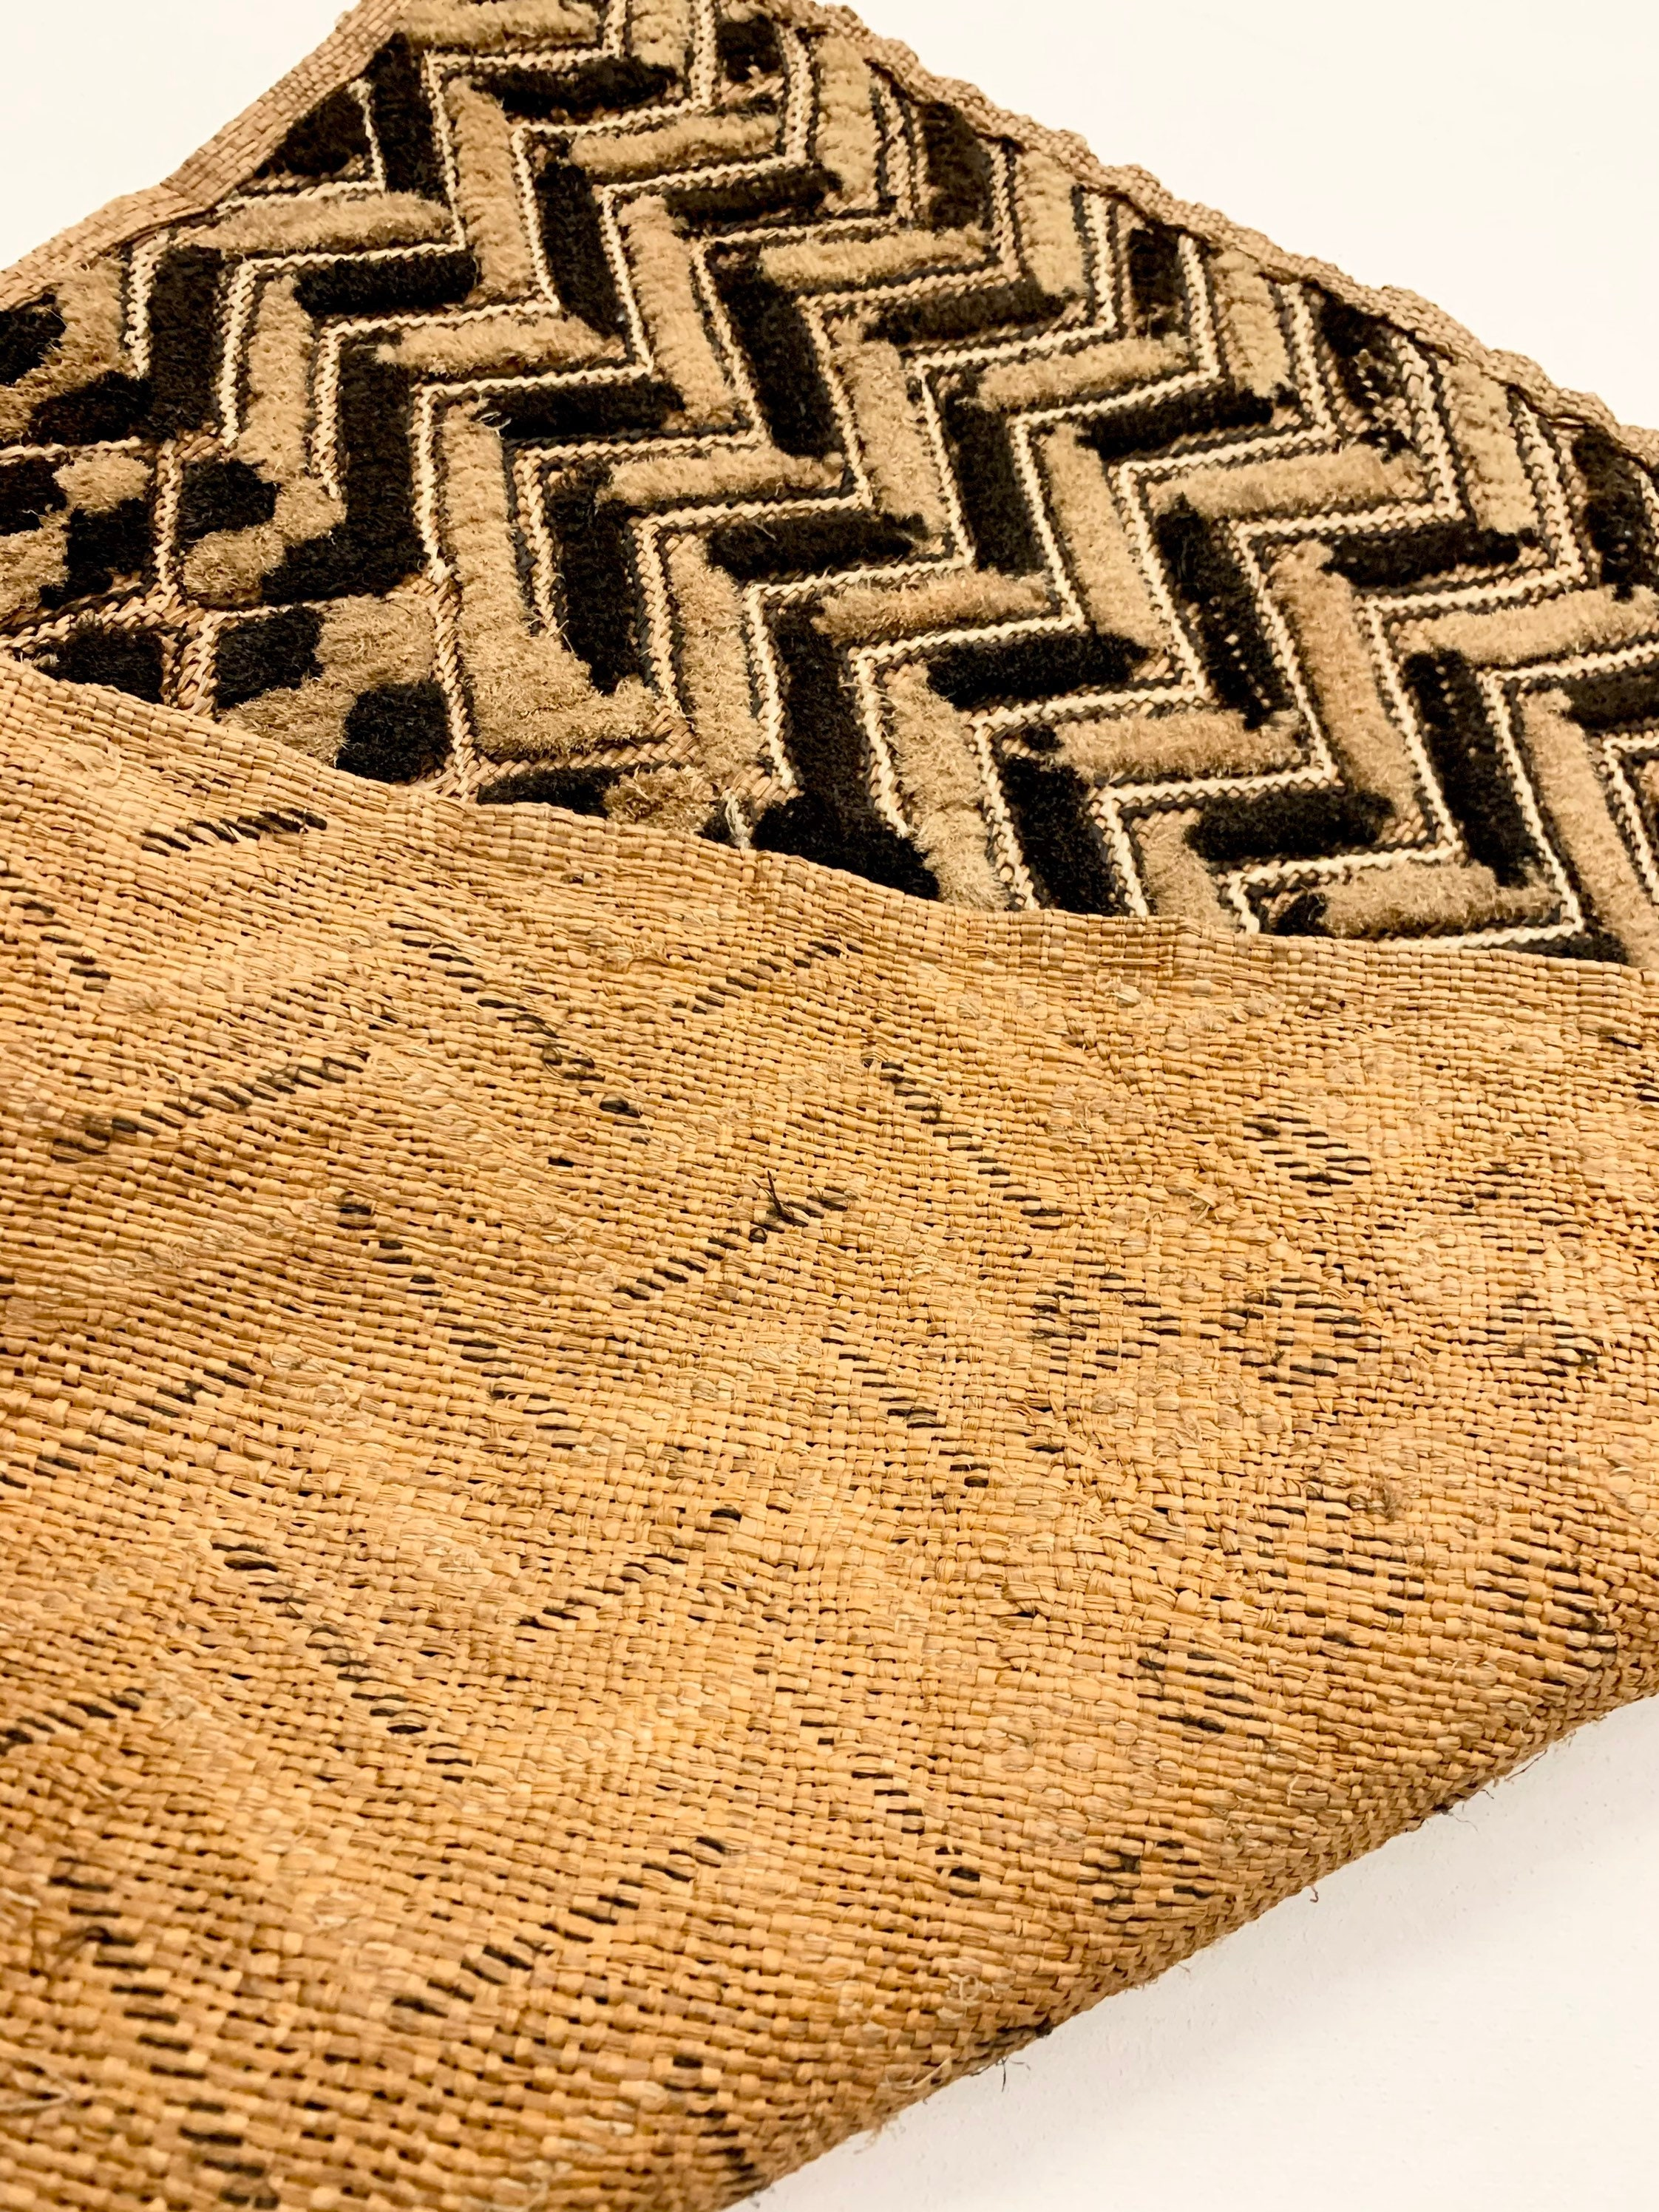 Tapestry Wall Decor African Tribal Tapestry Rug Wall Hanging Kuba Cloth Item Q